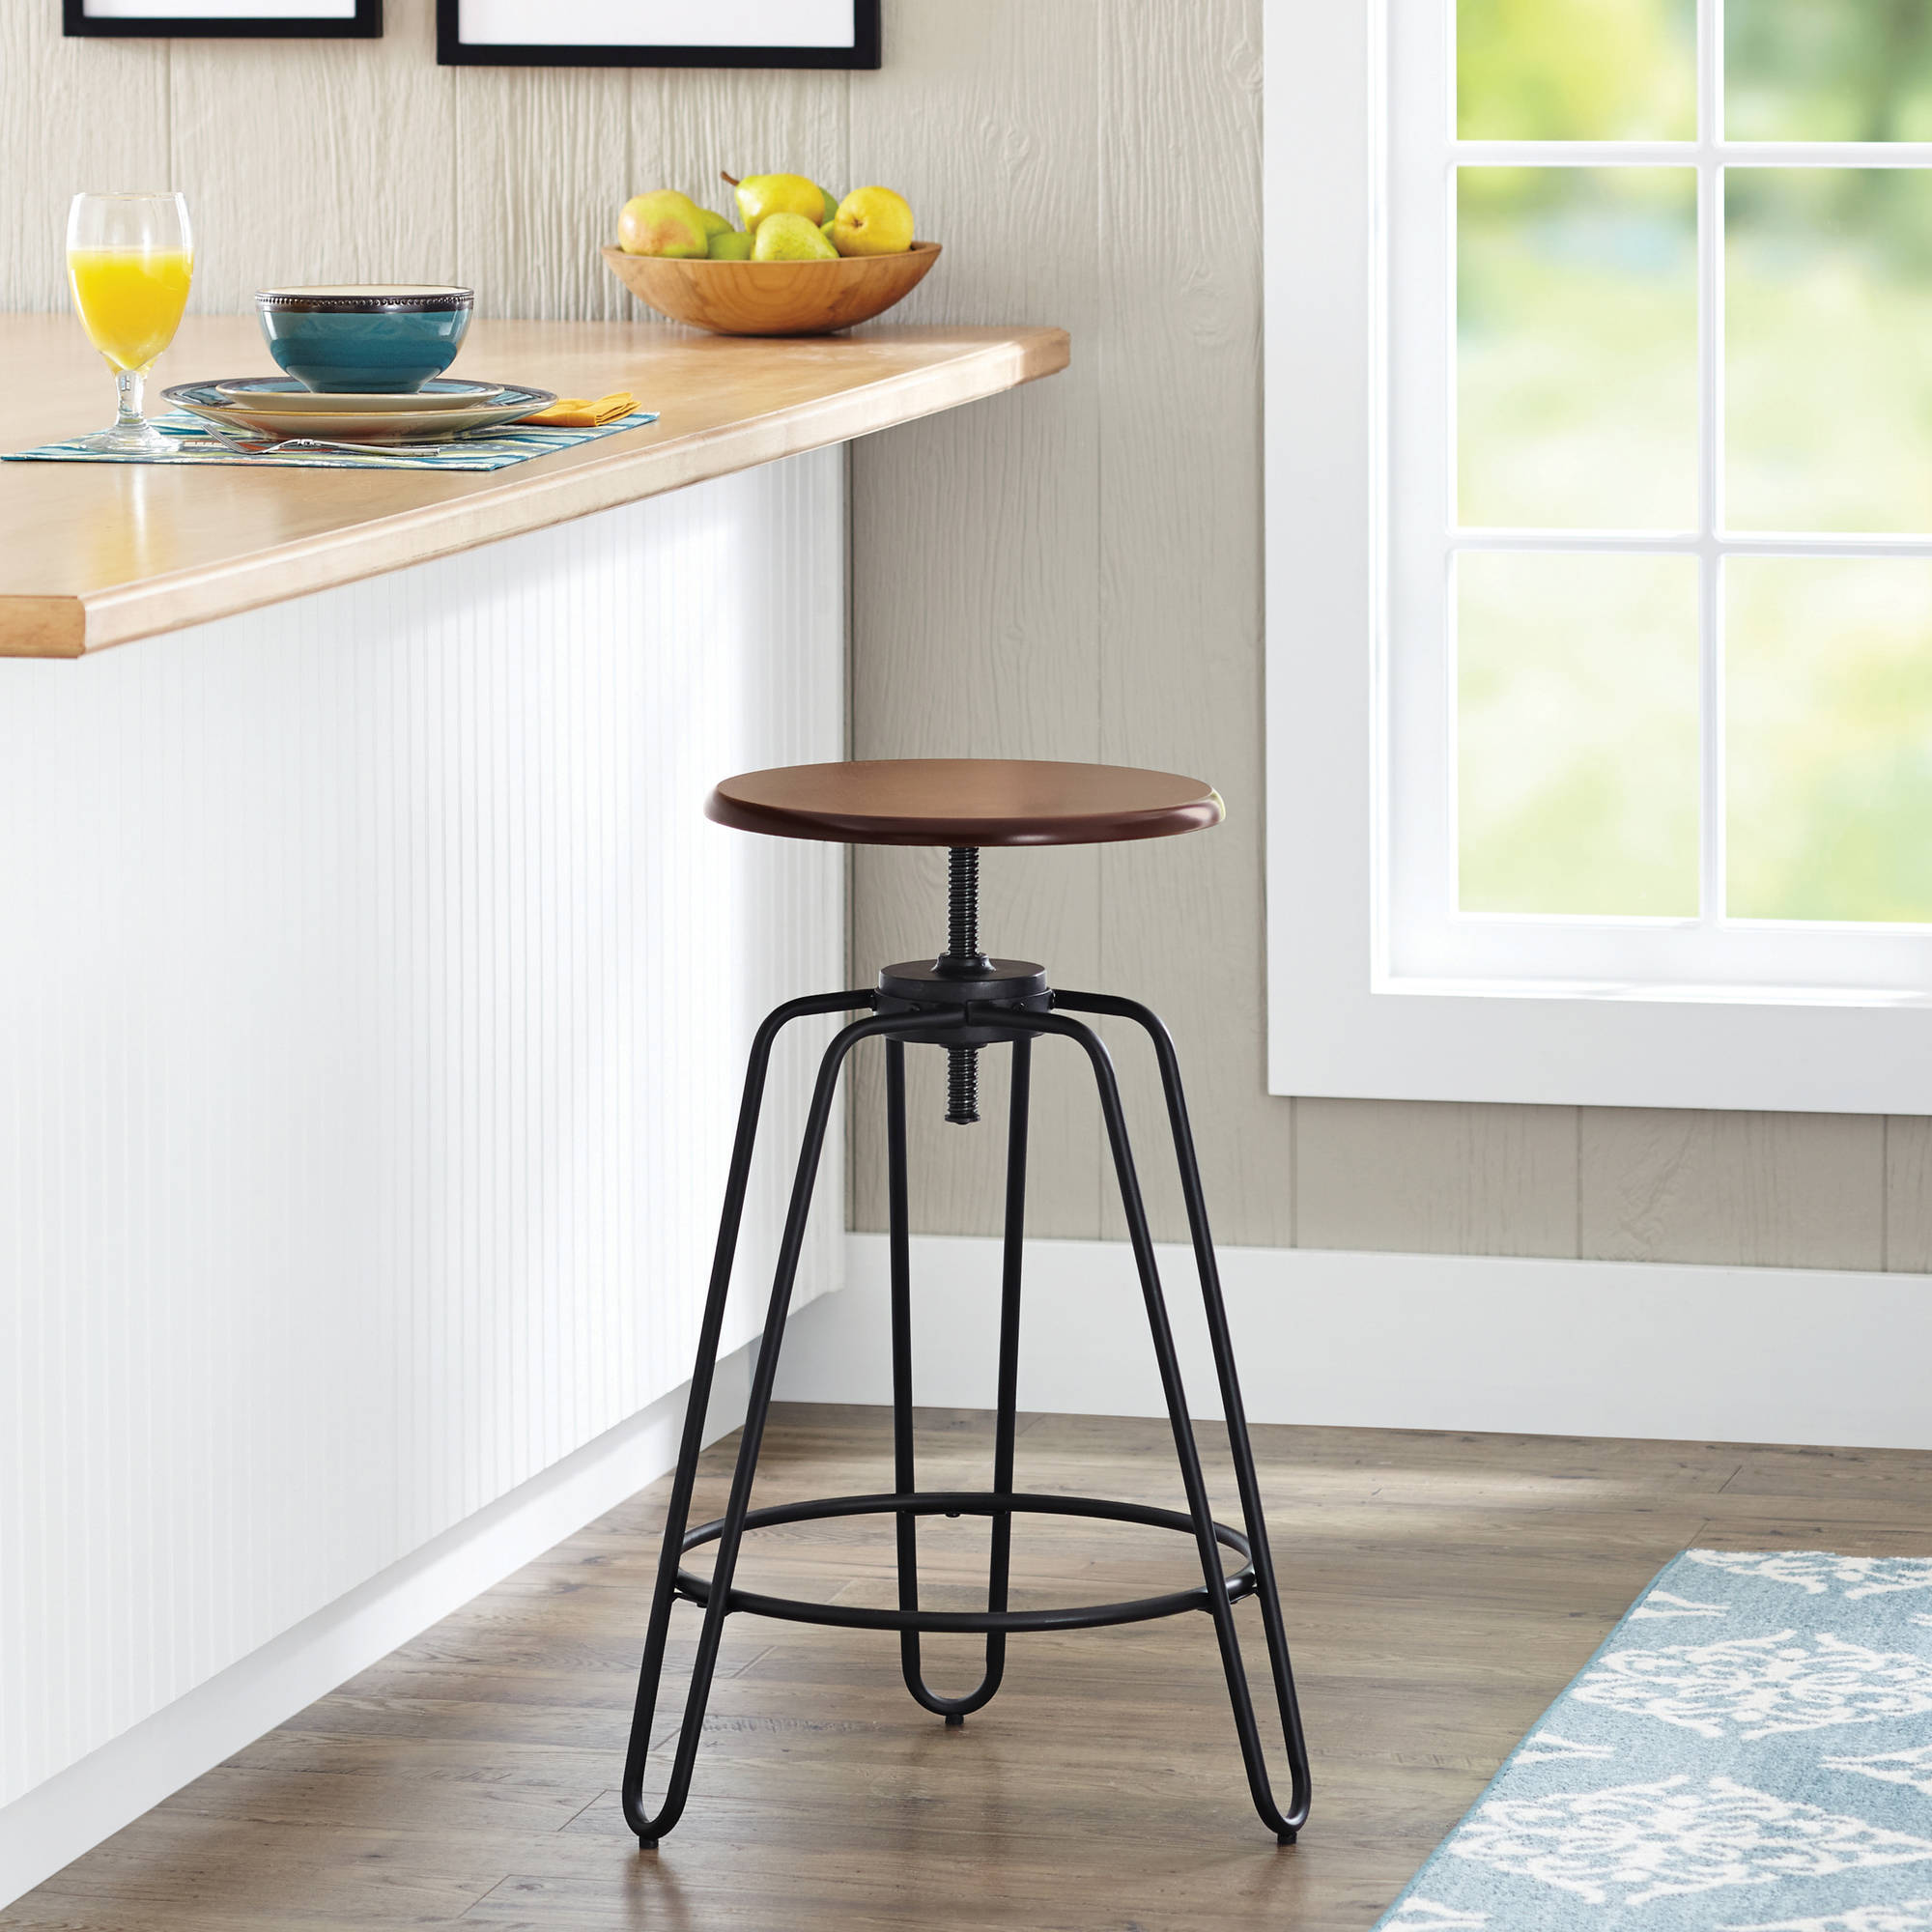 Better Homes and Gardens Adjustable-Height Spin Stool, Multiple Colors